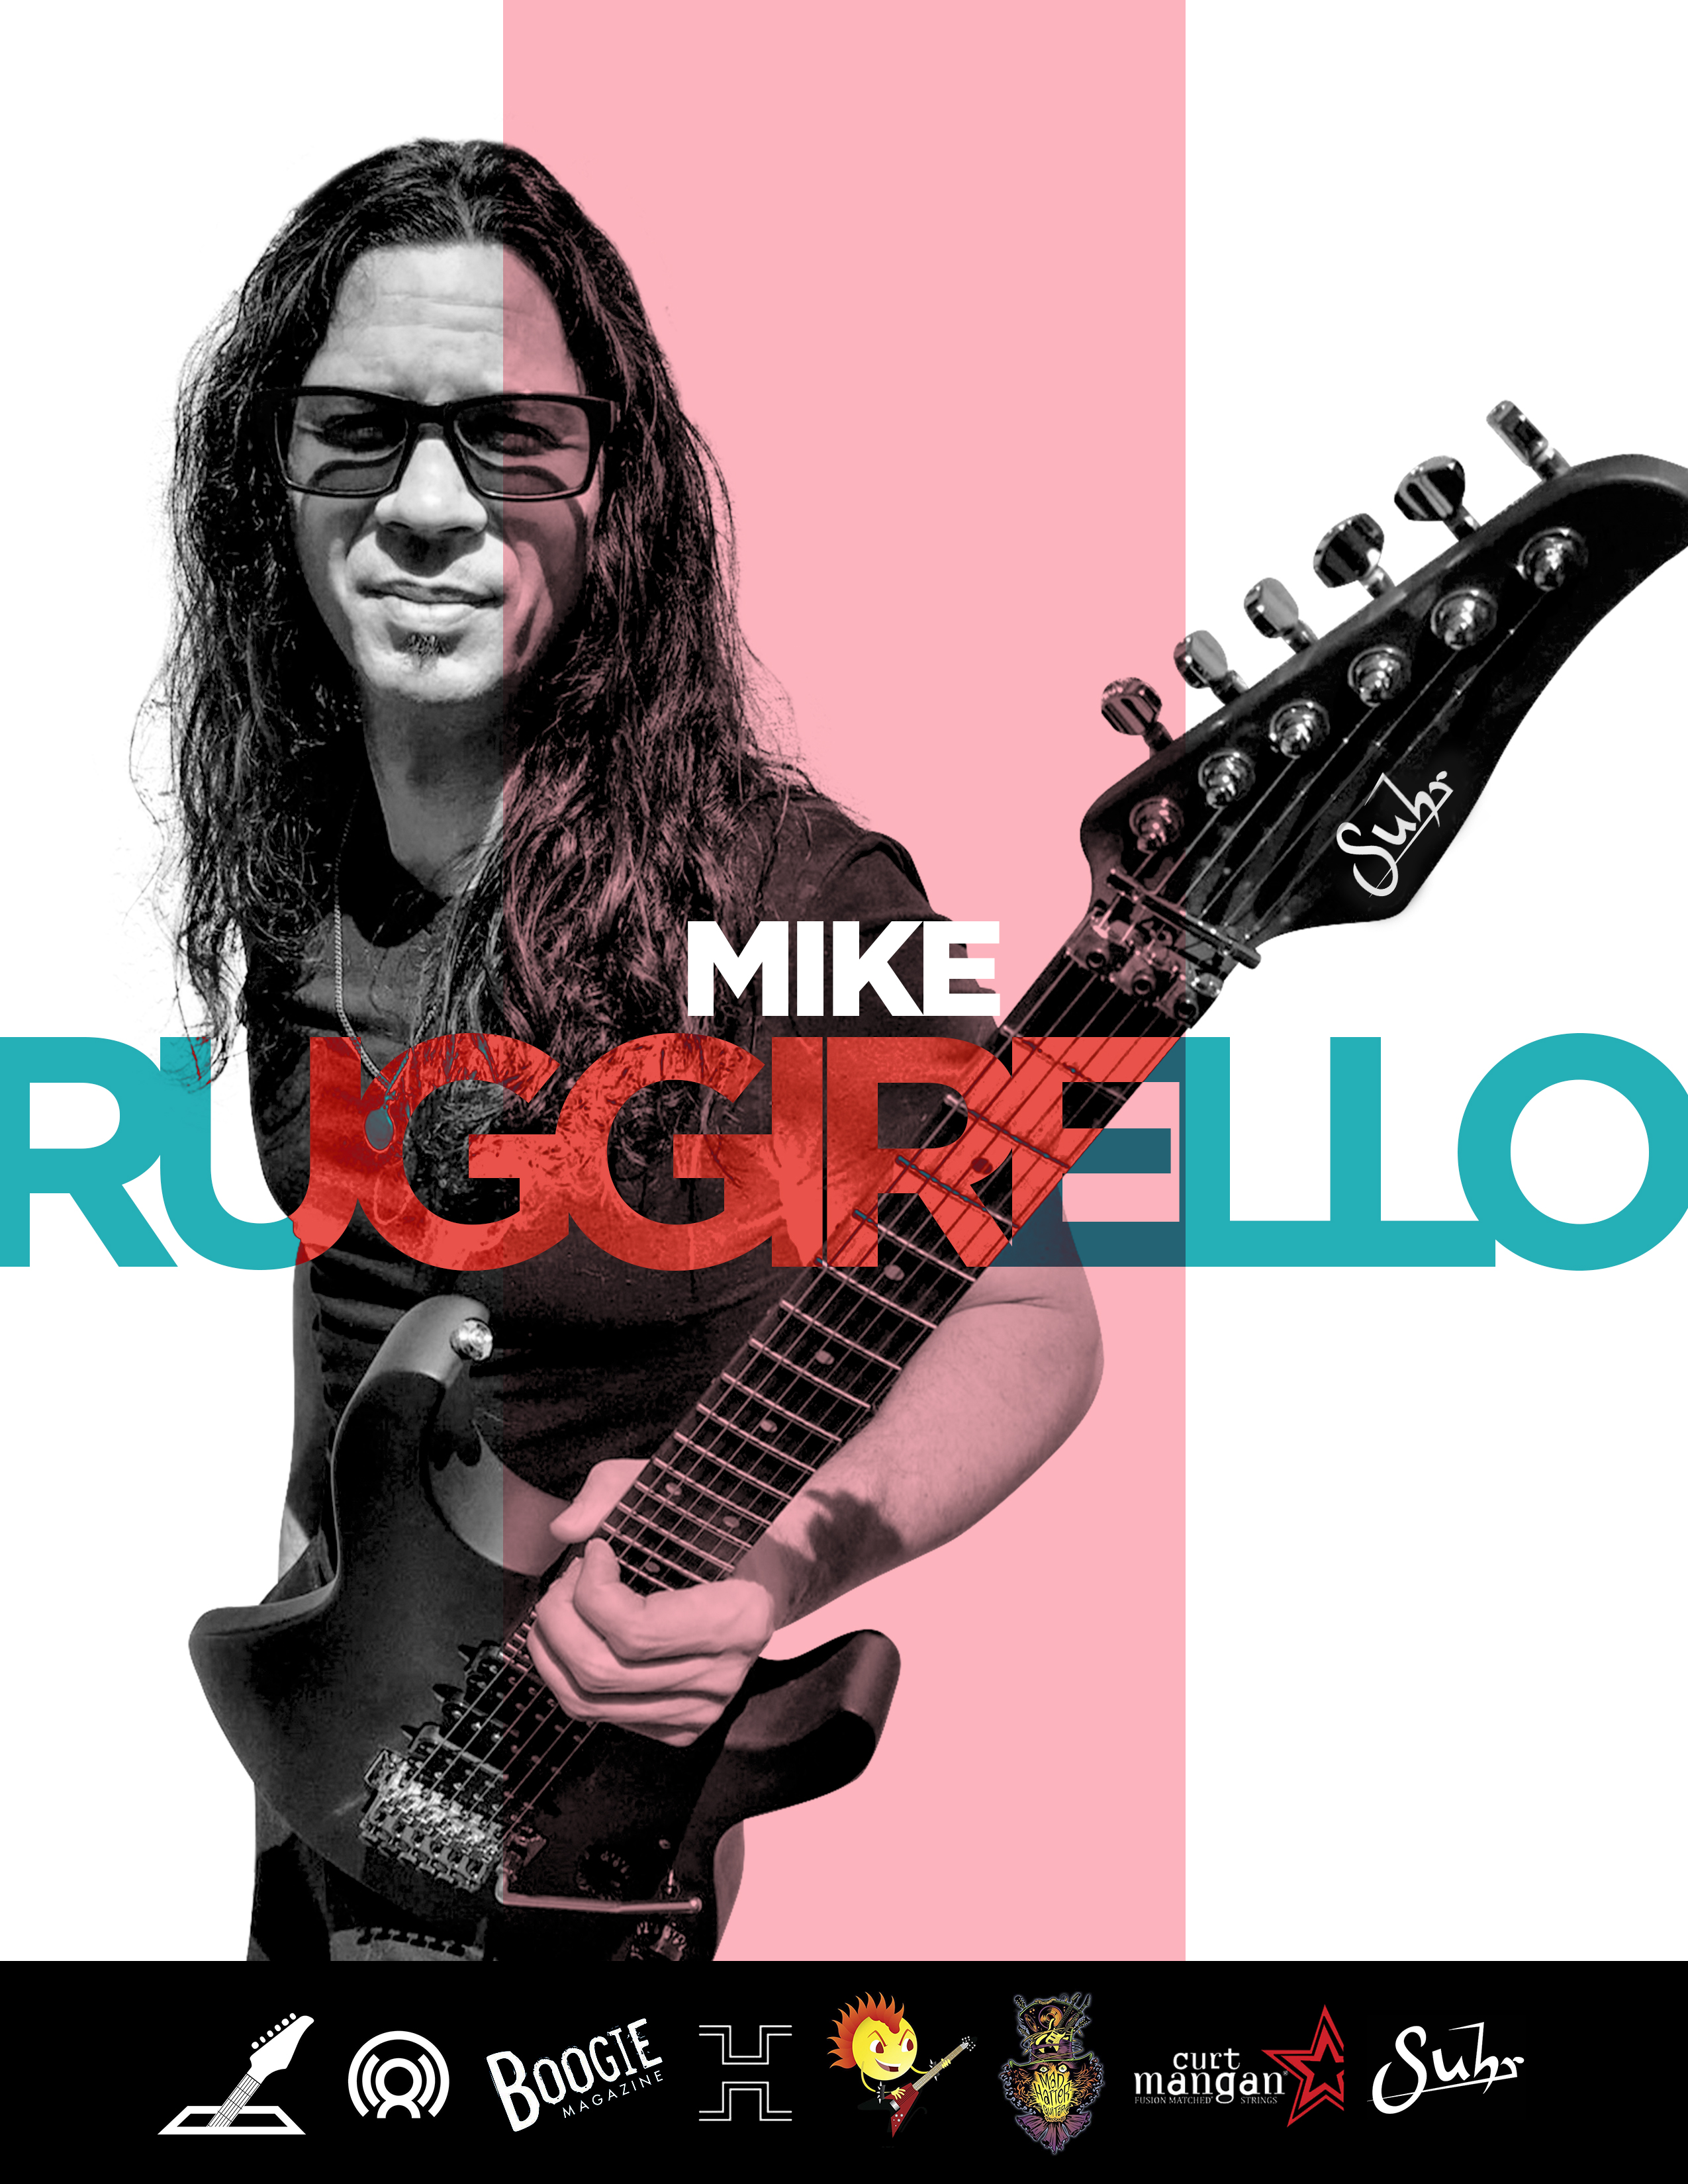 Mike Ruggirello Poster